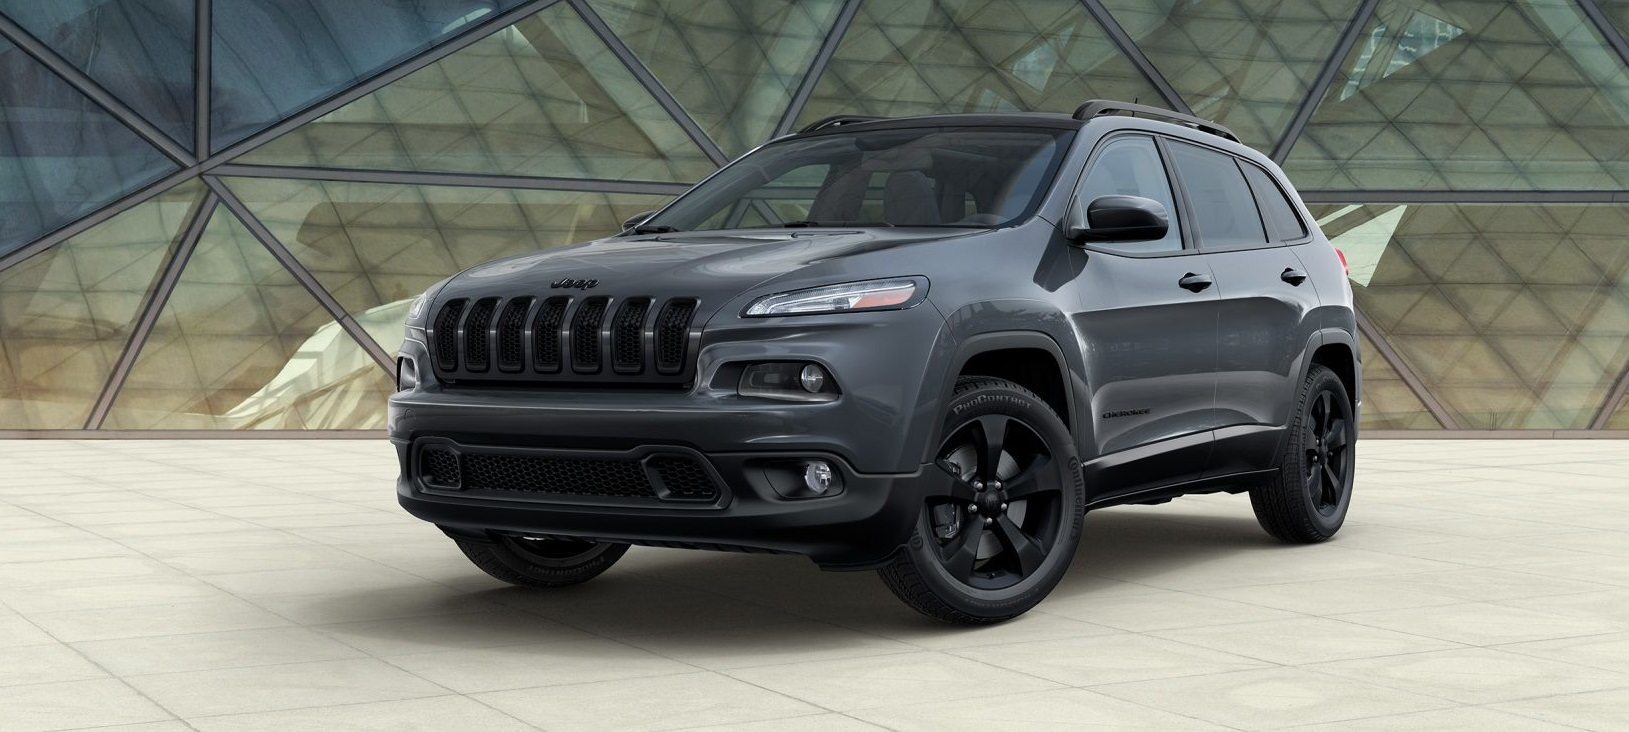 Greensboro NC - 2018 Jeep Cherokee High Altitude